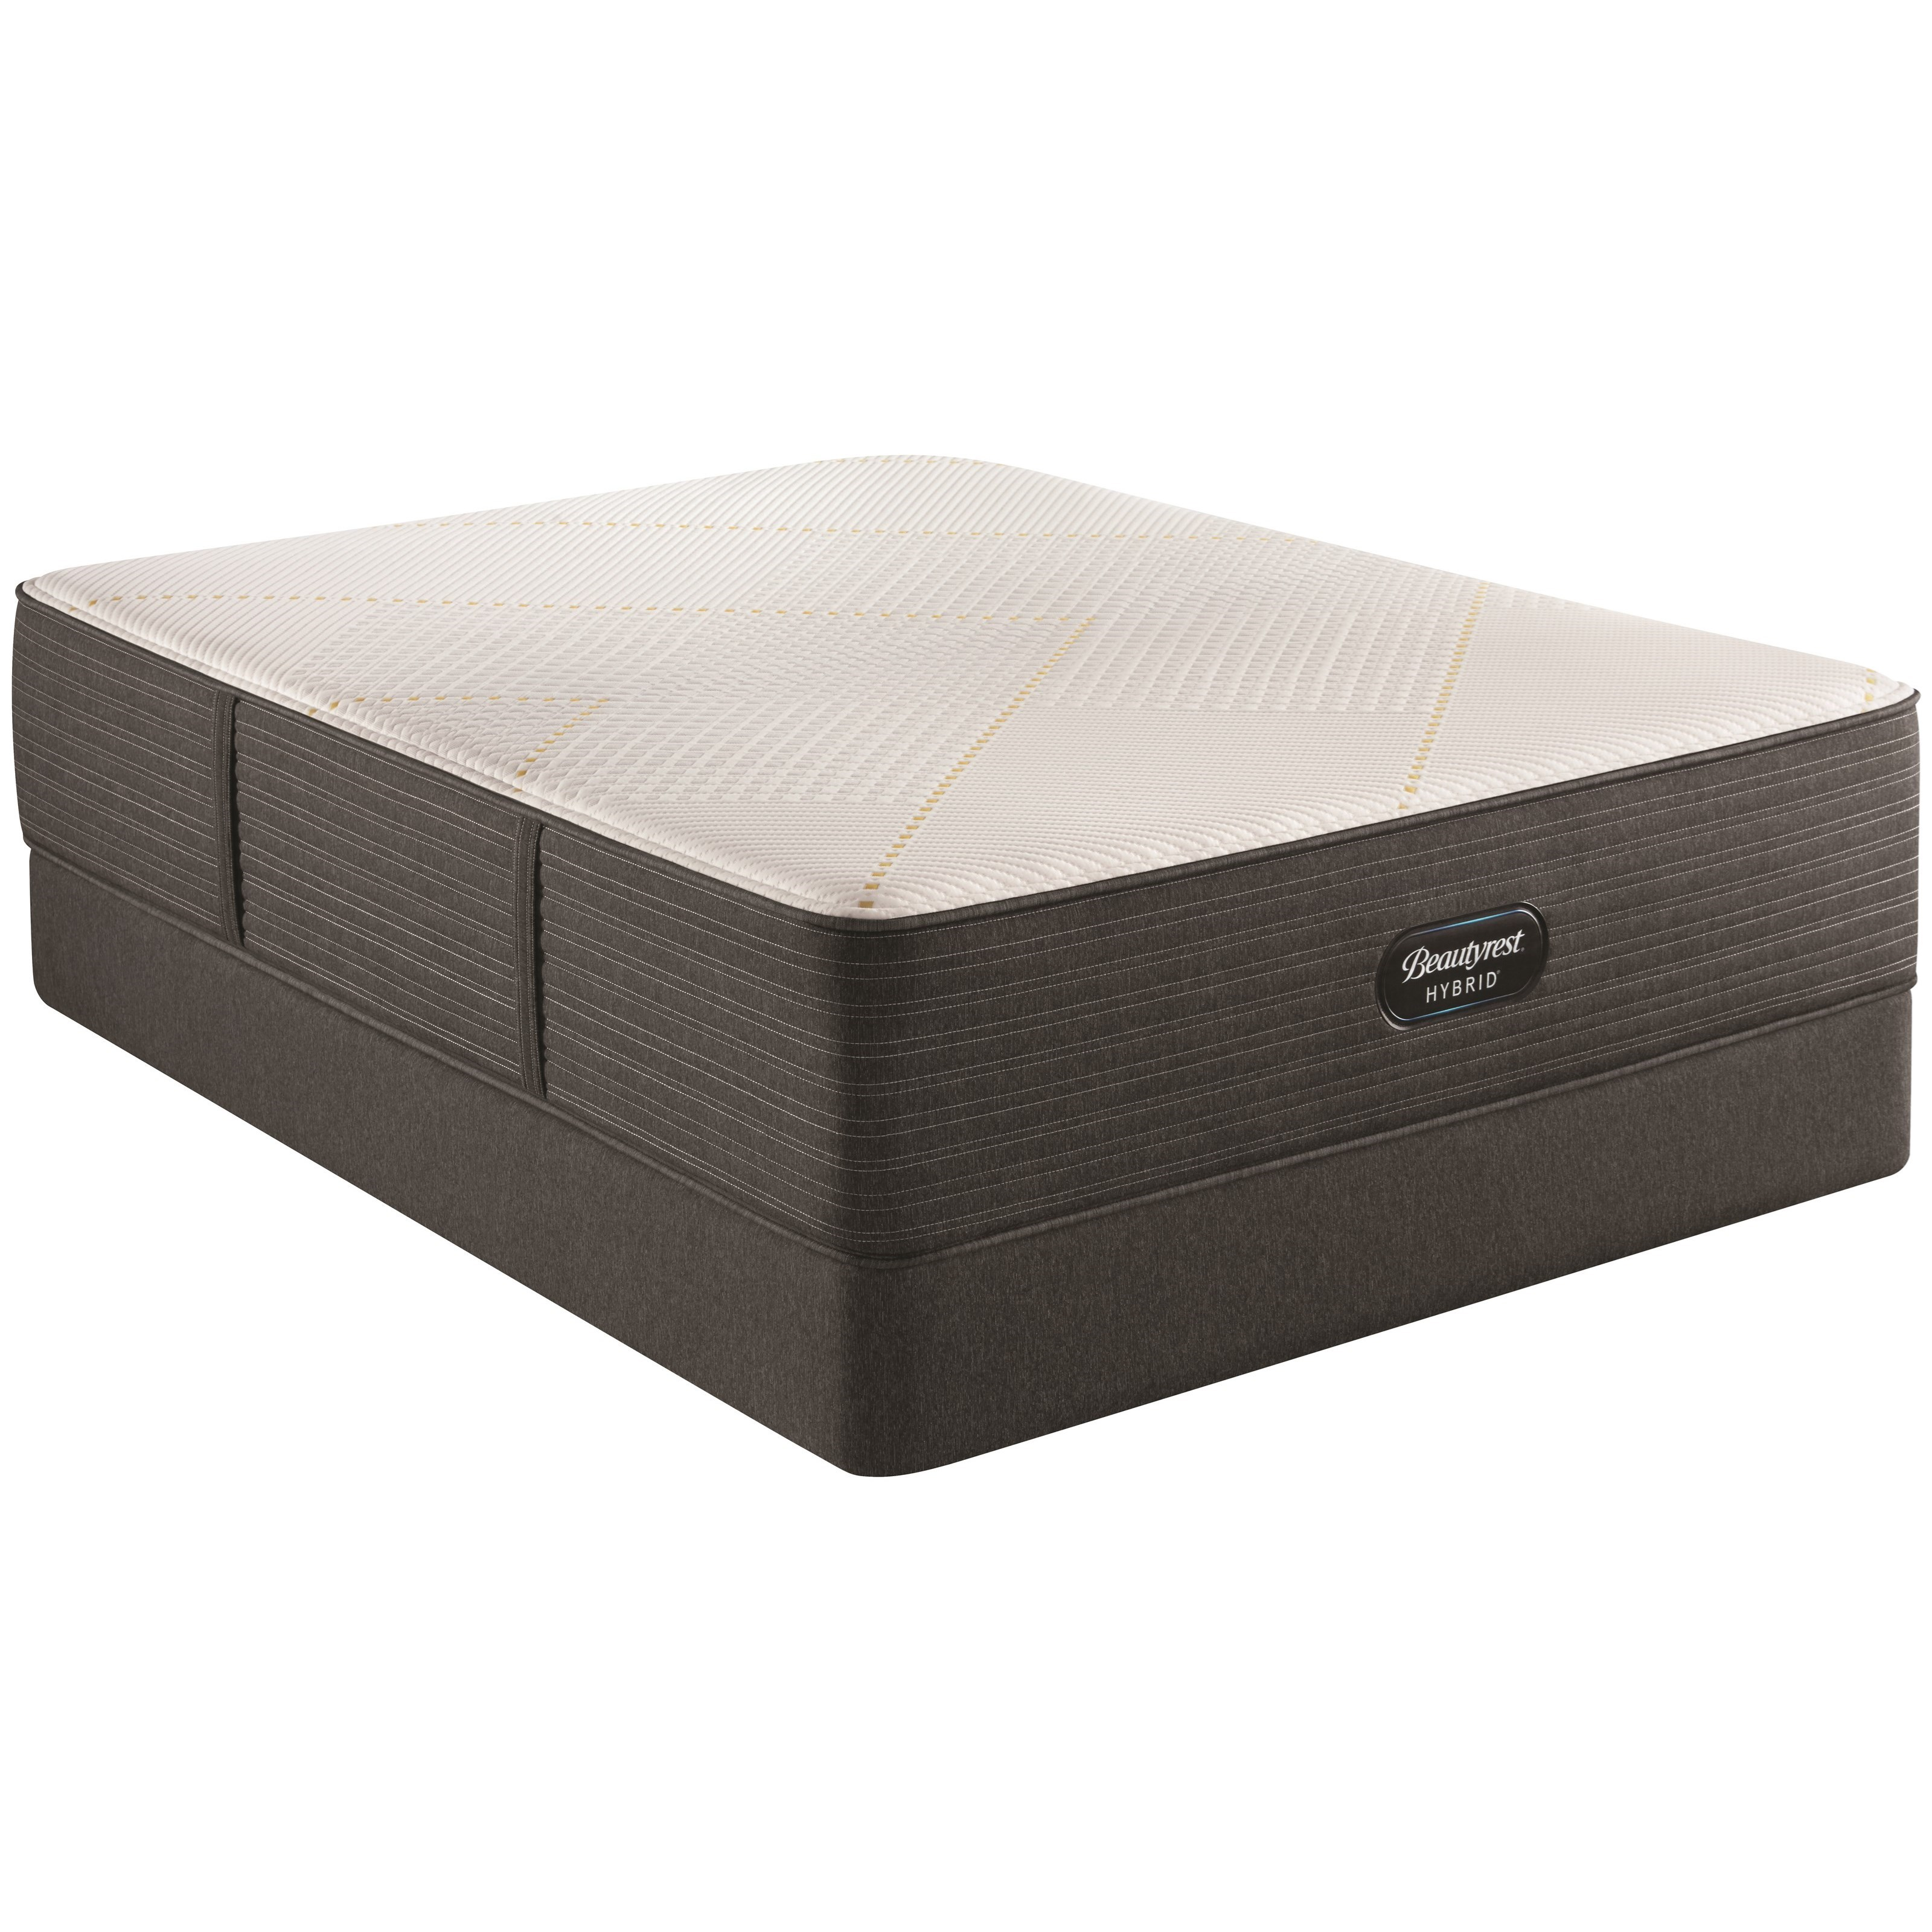 """Beautyrest Hybrid 3000 Ultra Plush Twin 14 1/2"""" Hybrid Mattress Set by Beautyrest at Gill Brothers Furniture"""